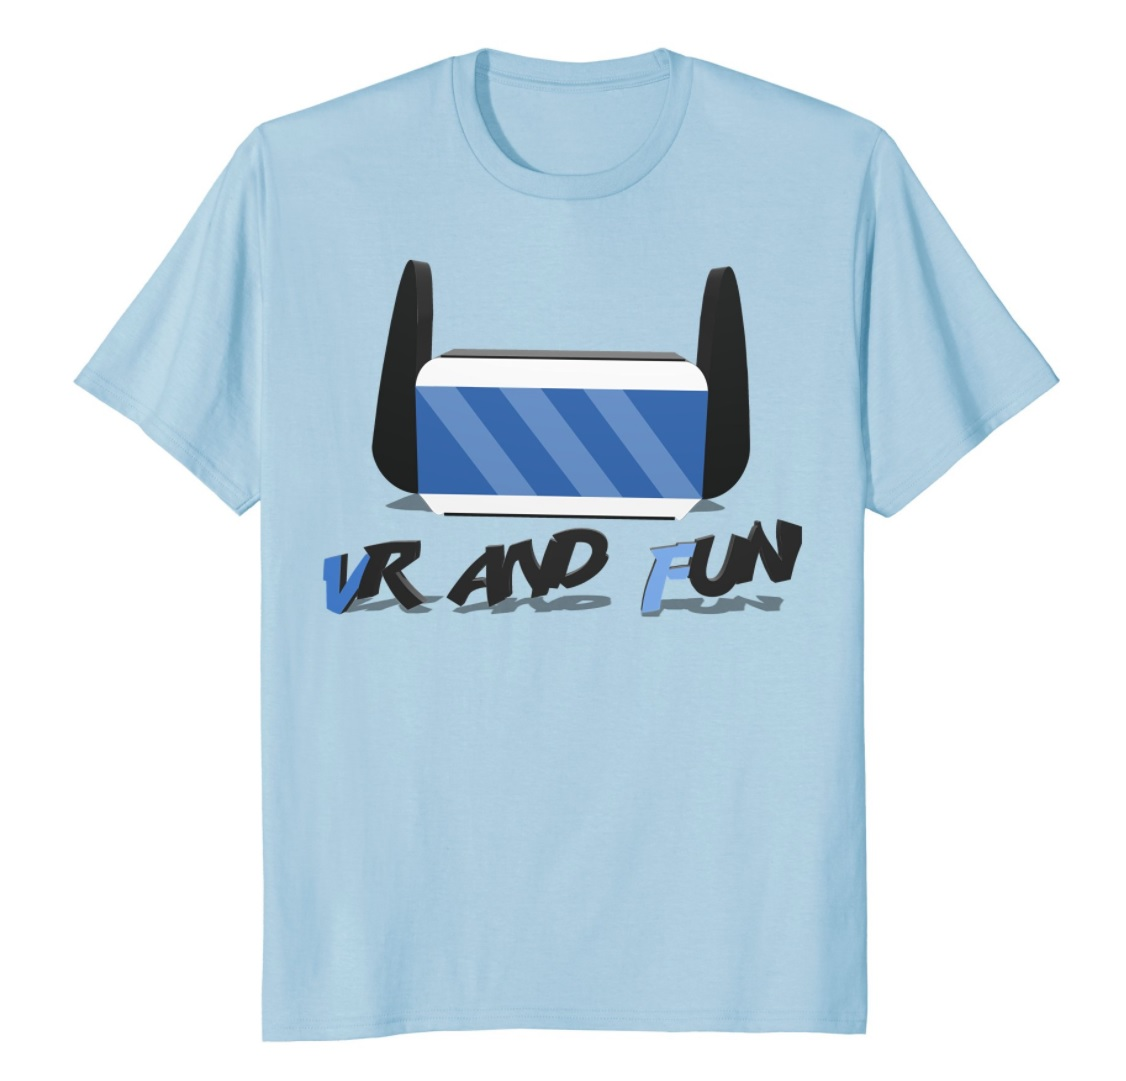 vr and fun t-shirt blue